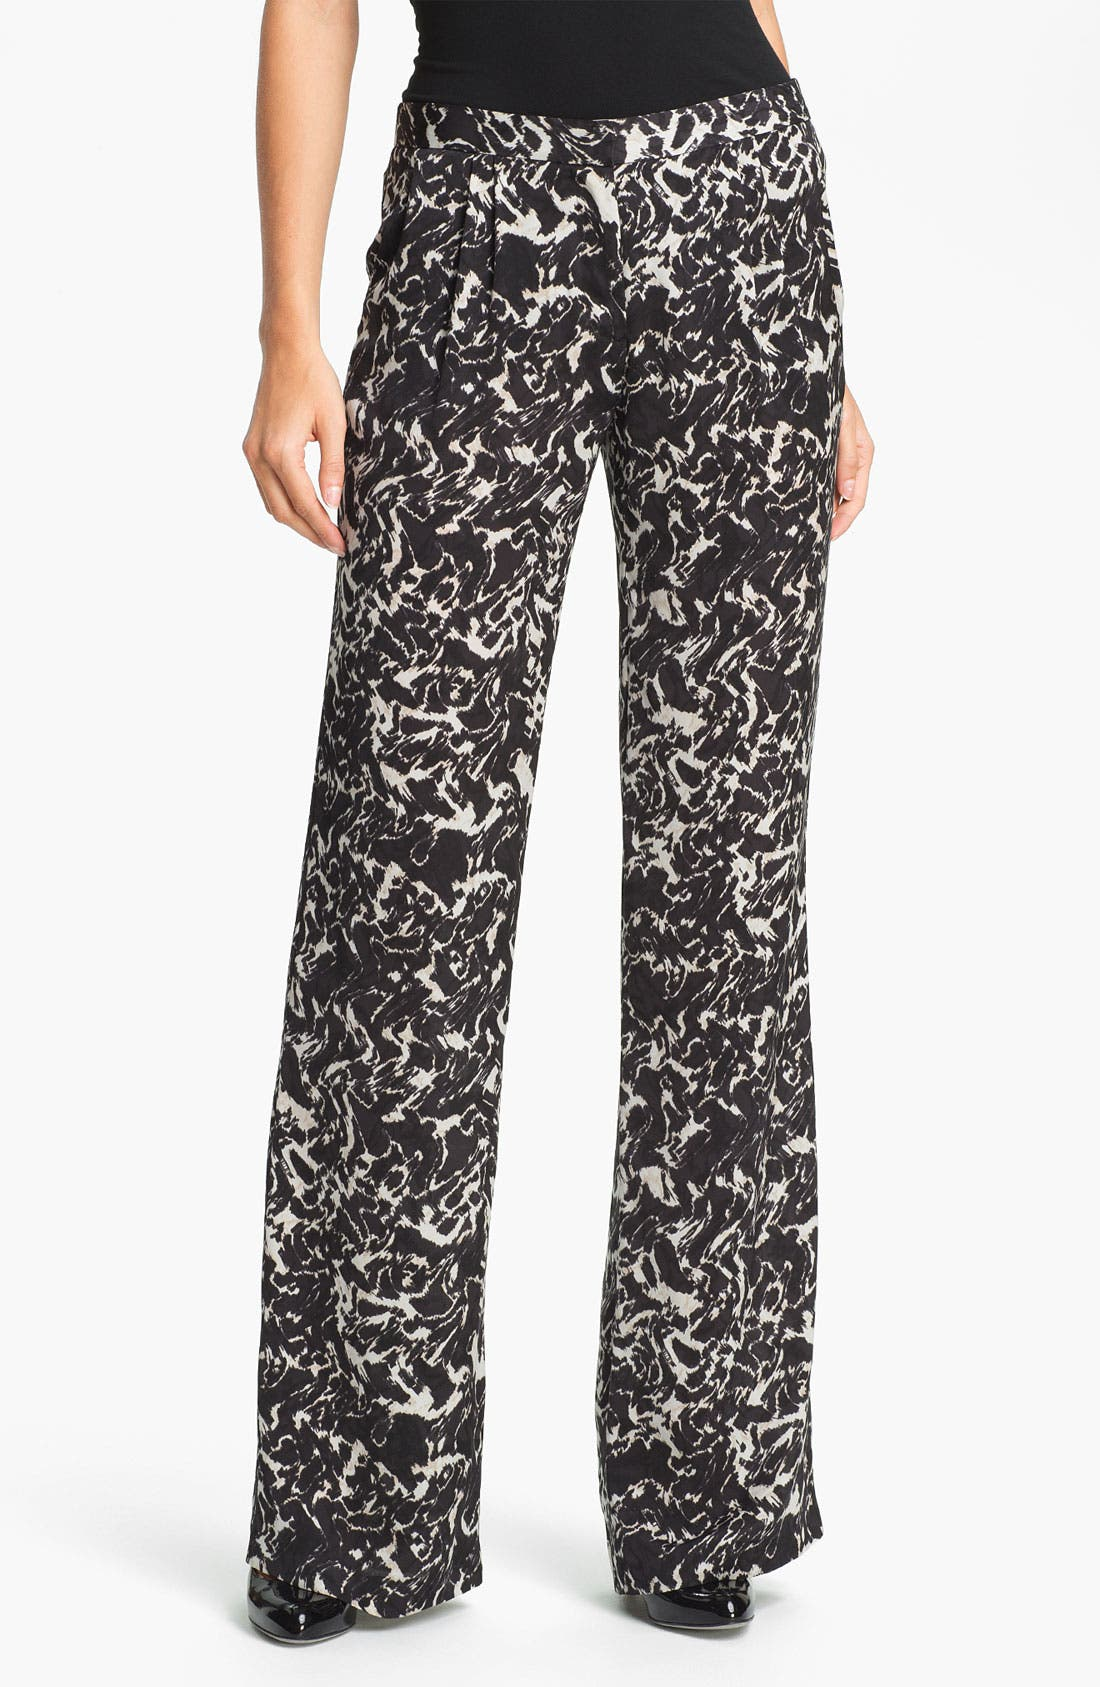 Alternate Image 1 Selected - DKNYC 'Ambiance' Satin Pants